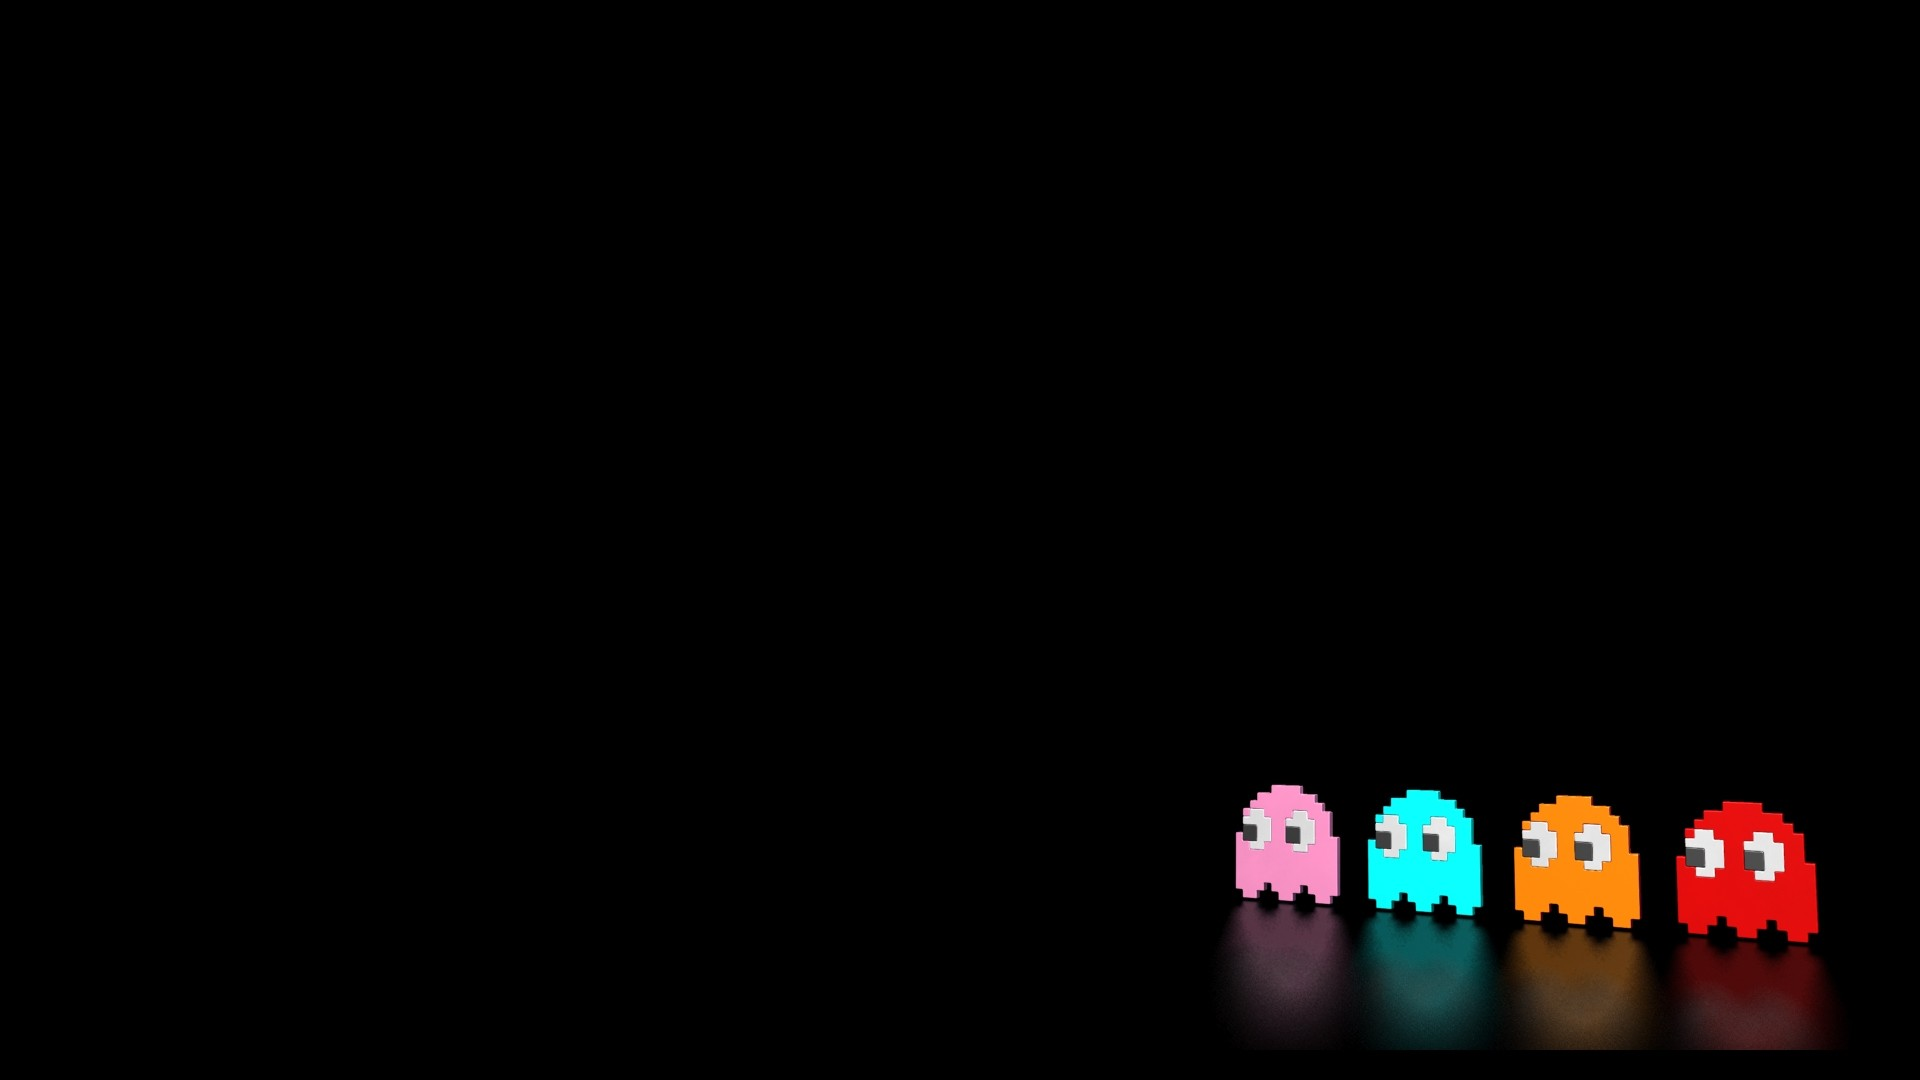 Pacman Ghosts Wallpaper, Reflective Pacman Ghosts iPhone Wallpaper .